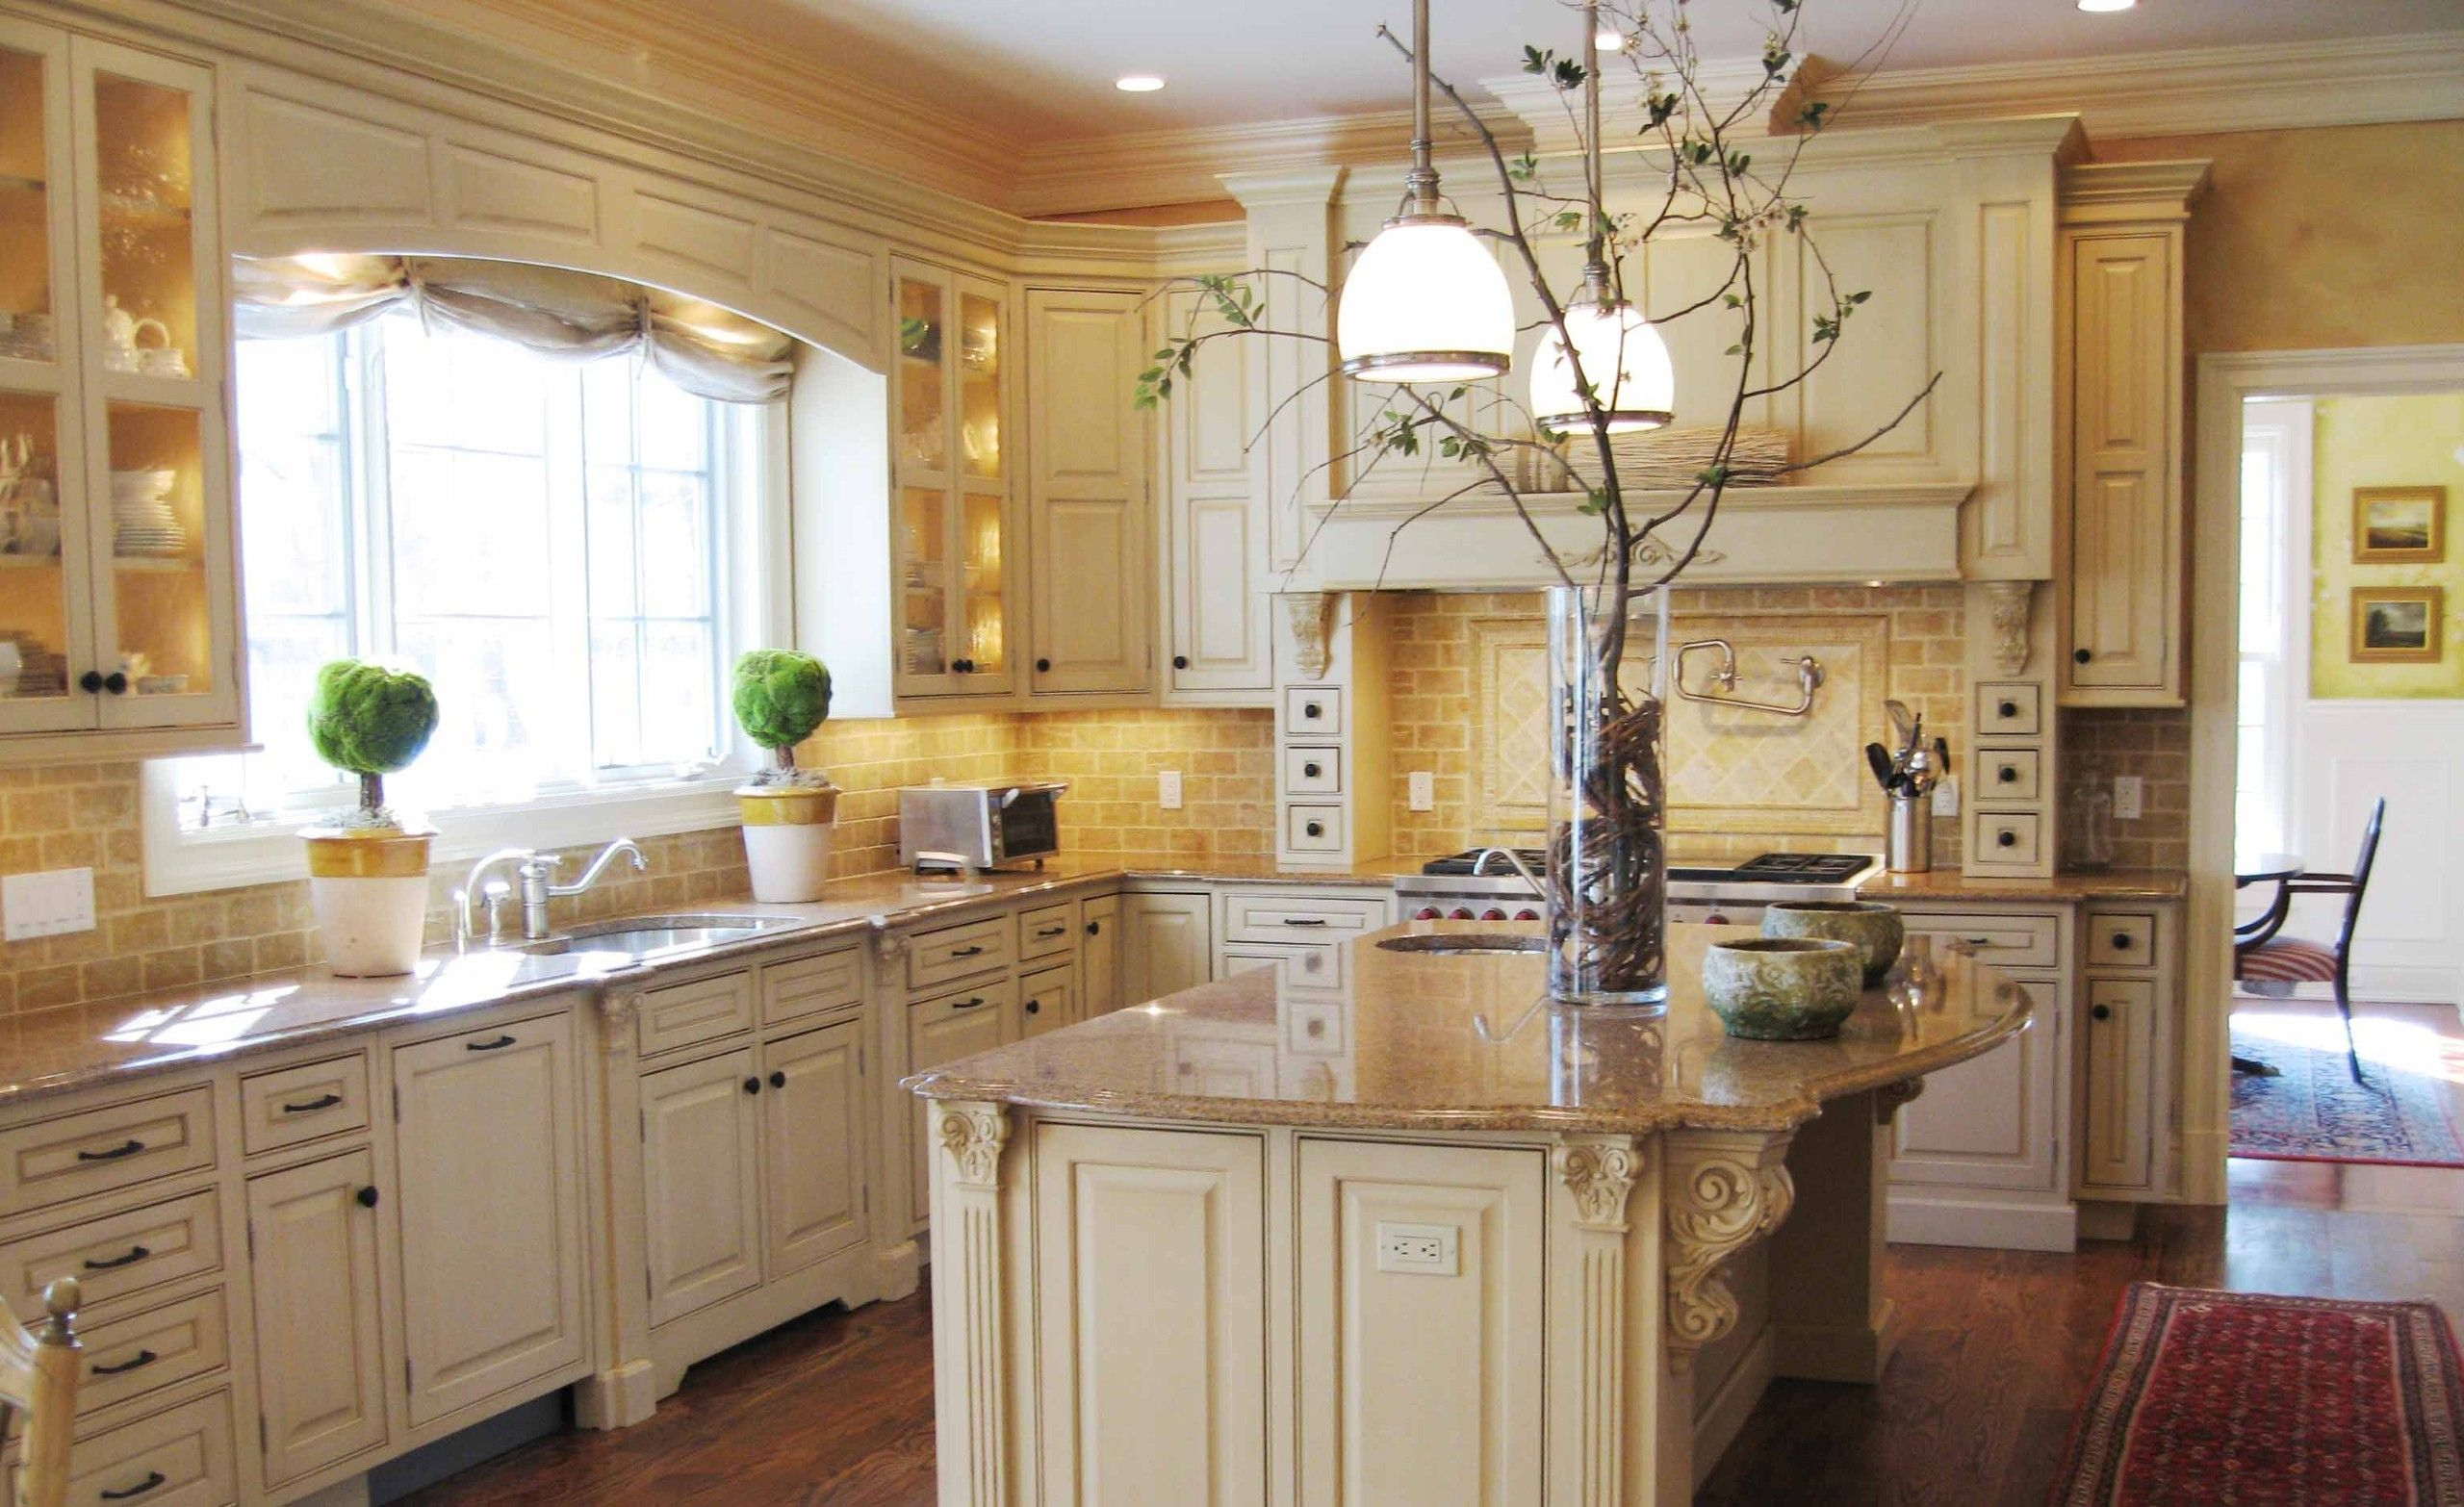 French country kitchens - Terrific French Country Kitchen Decor With Broken White Cabis